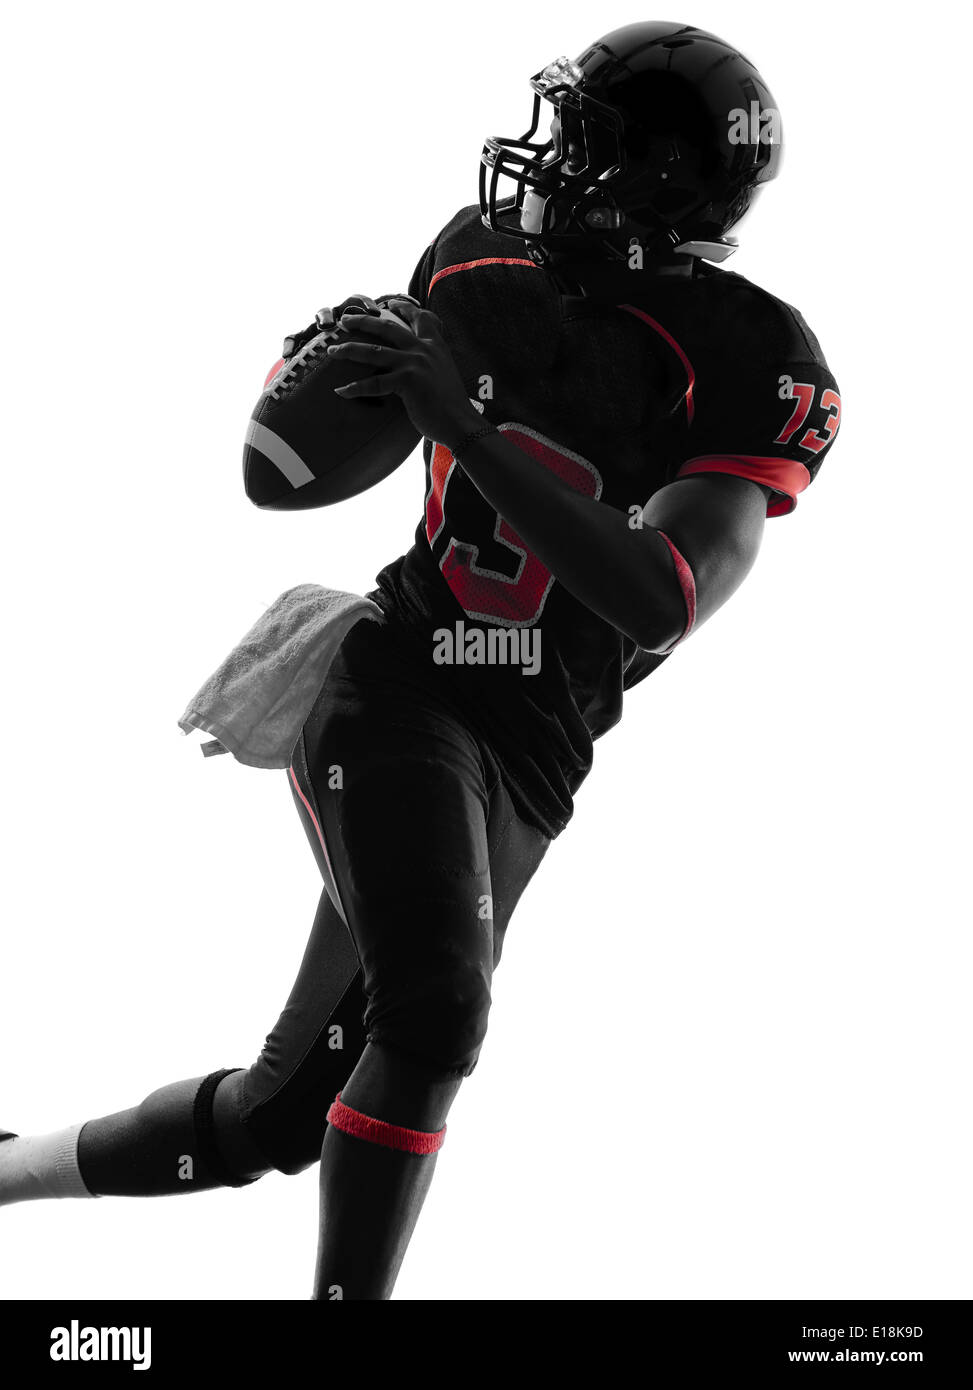 one american football player quarterback portrait in silhouette shadow on white background - Stock Image